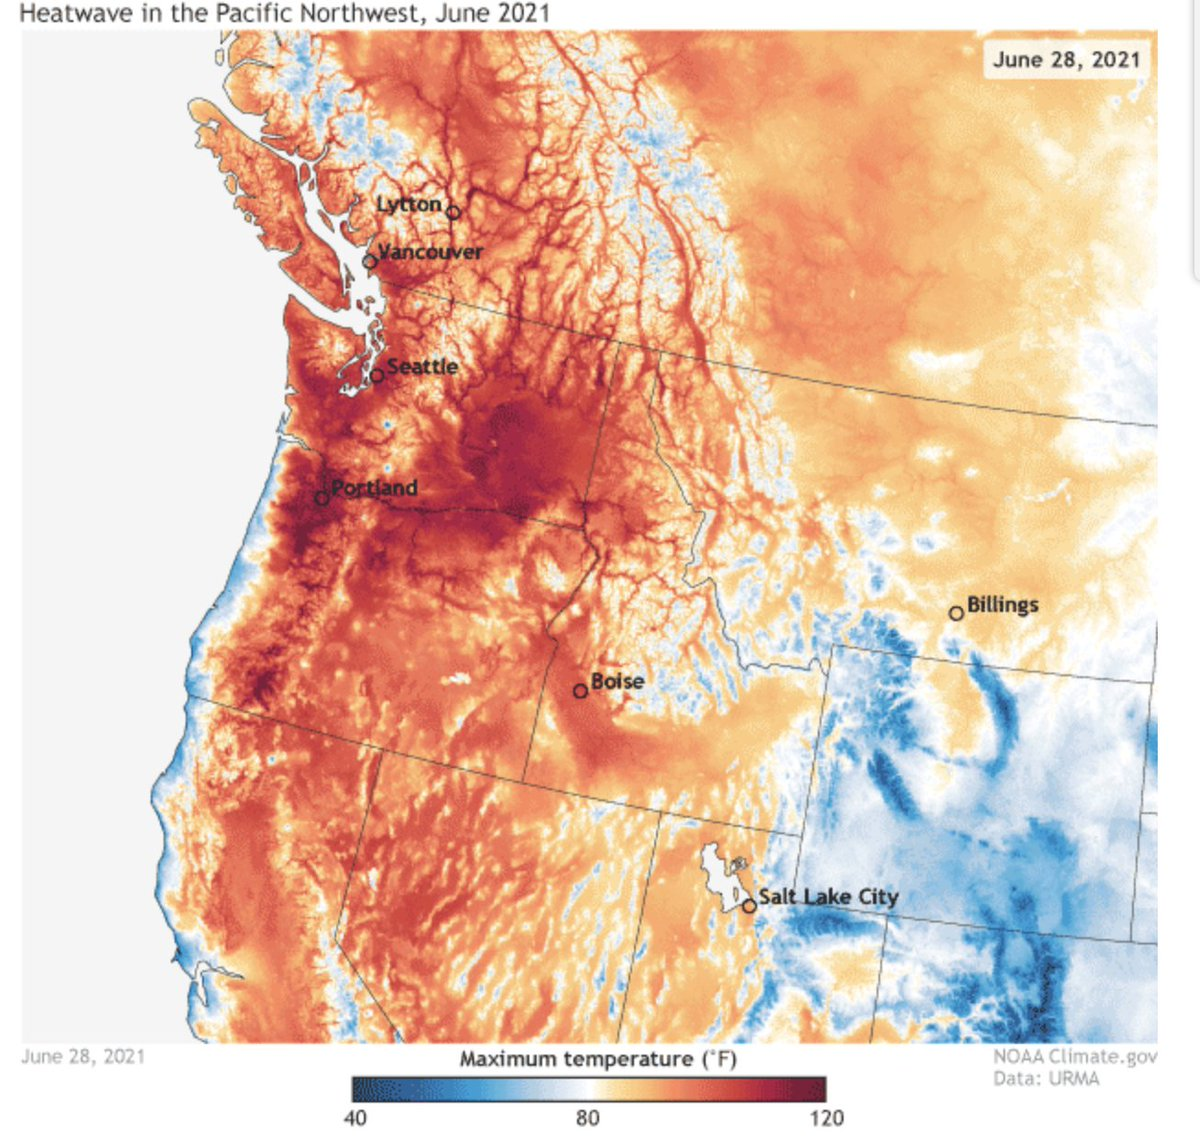 North America heatwave almost impossible without climate change